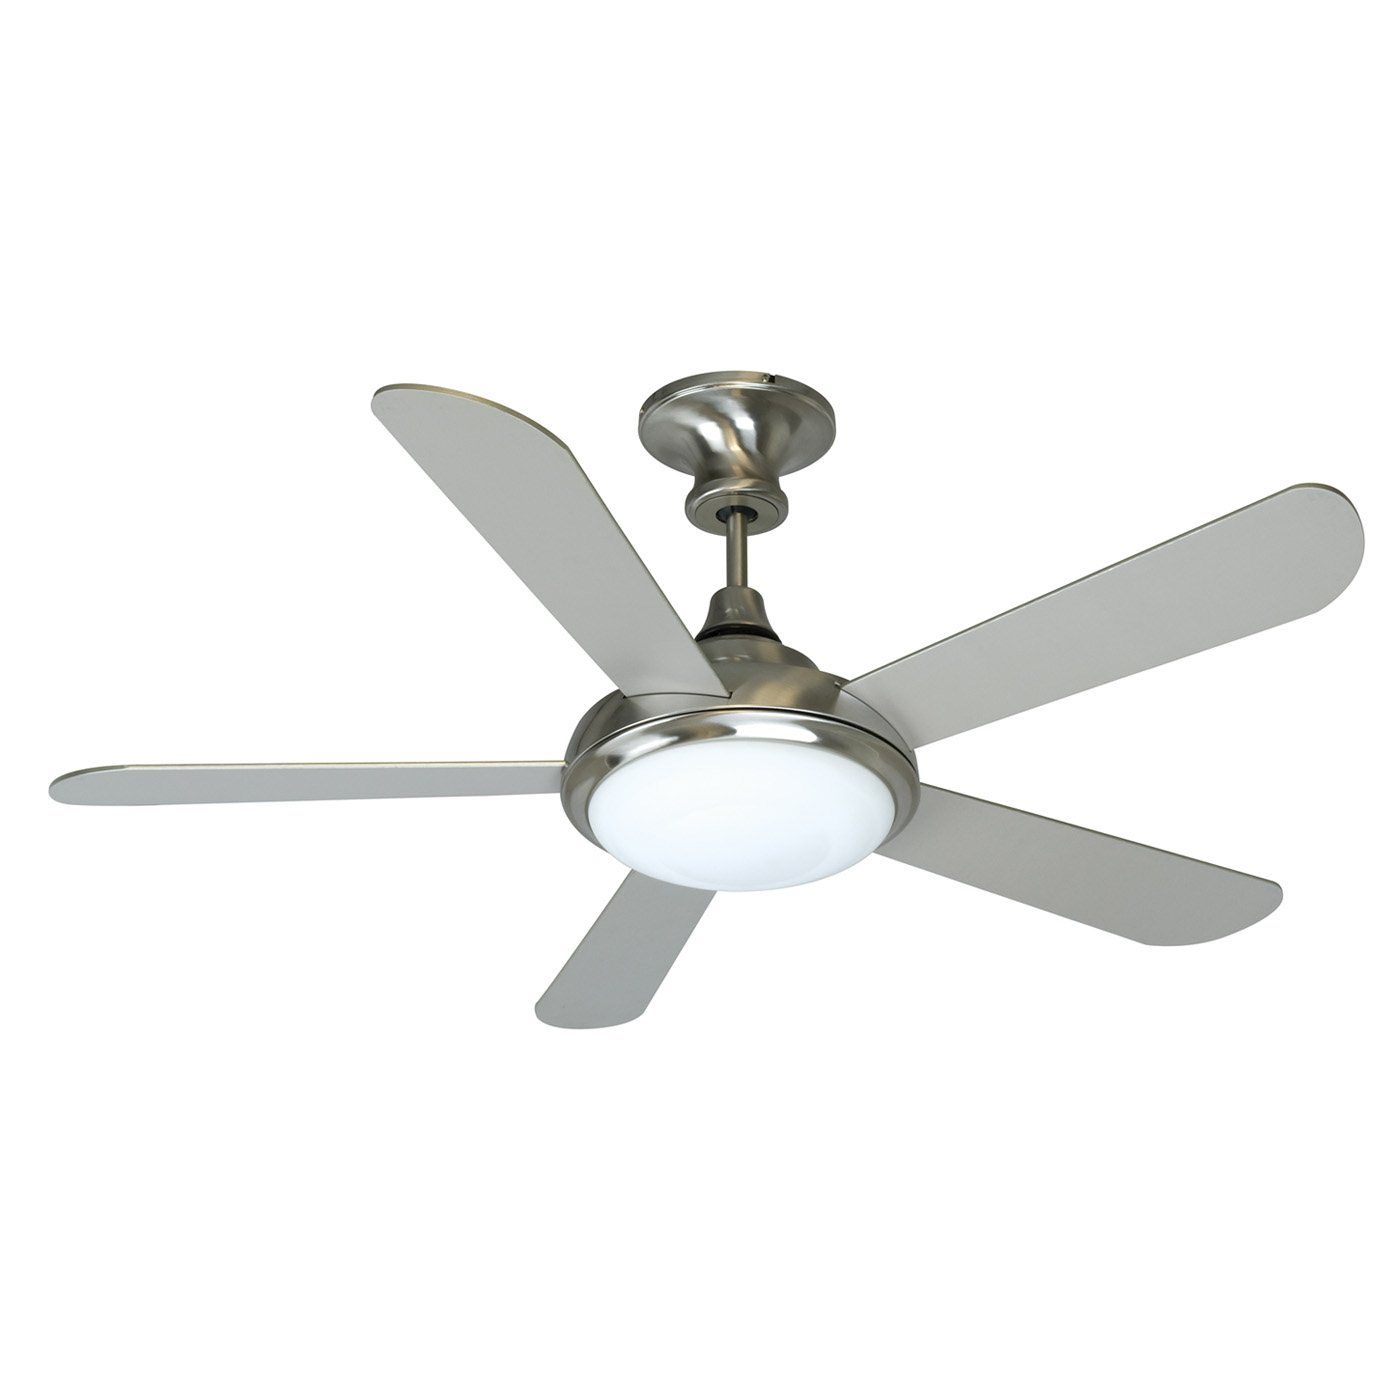 Craftmade TR52 52in Triumph Ceiling Fan Lighting Universe